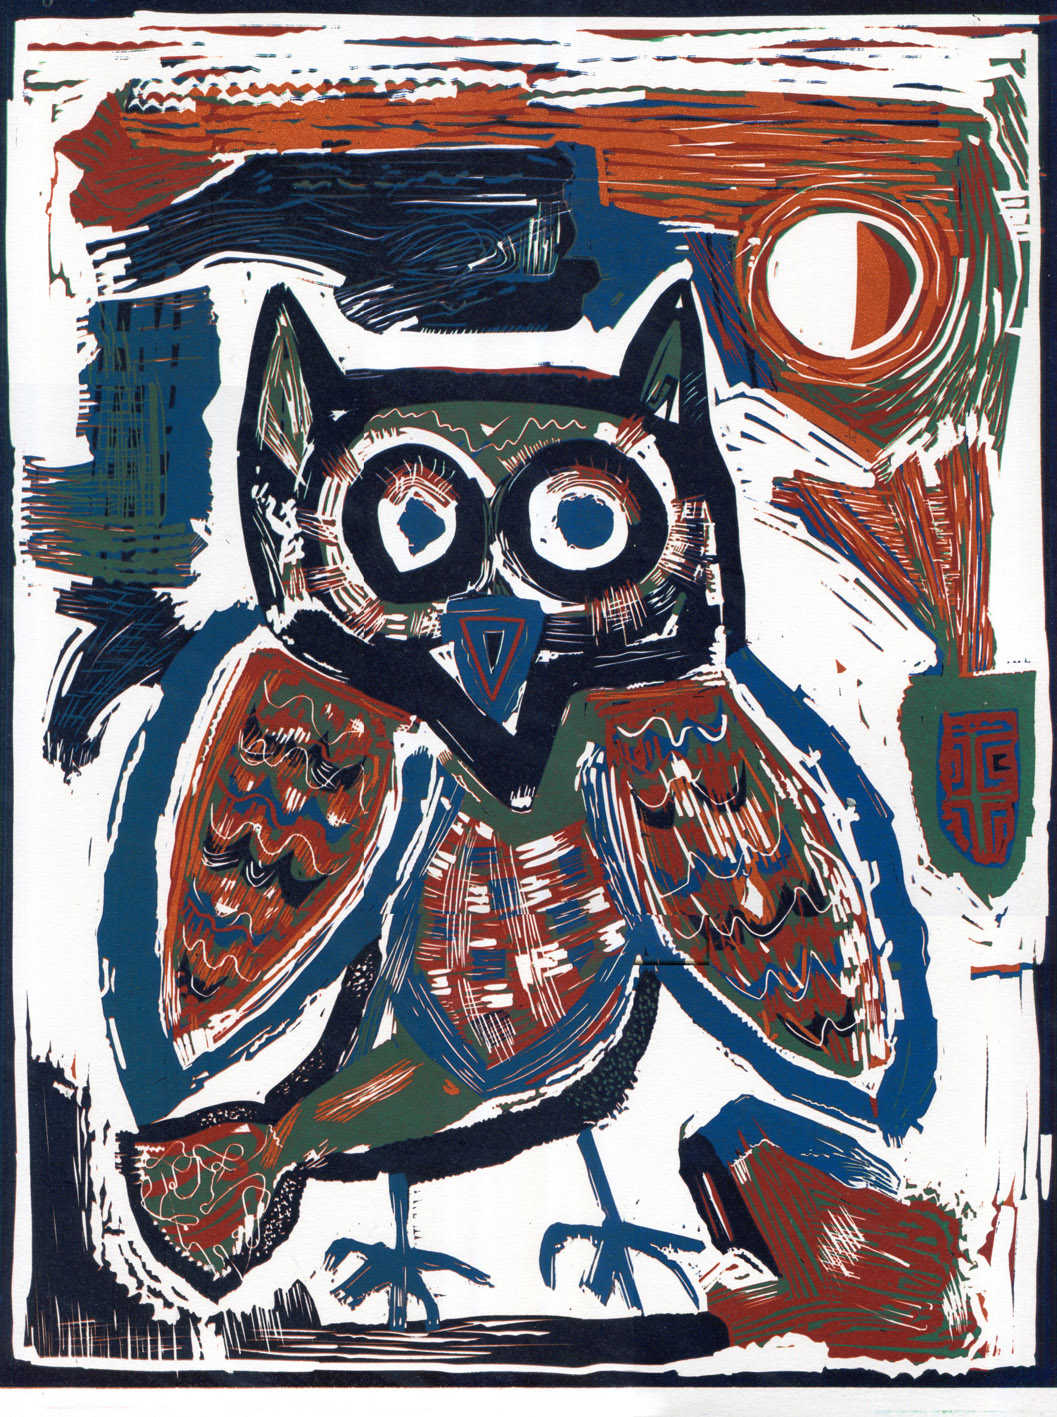 Artwork - Owl Transfixed I reduction linocut Print | Steve Edwards - reduction linocut